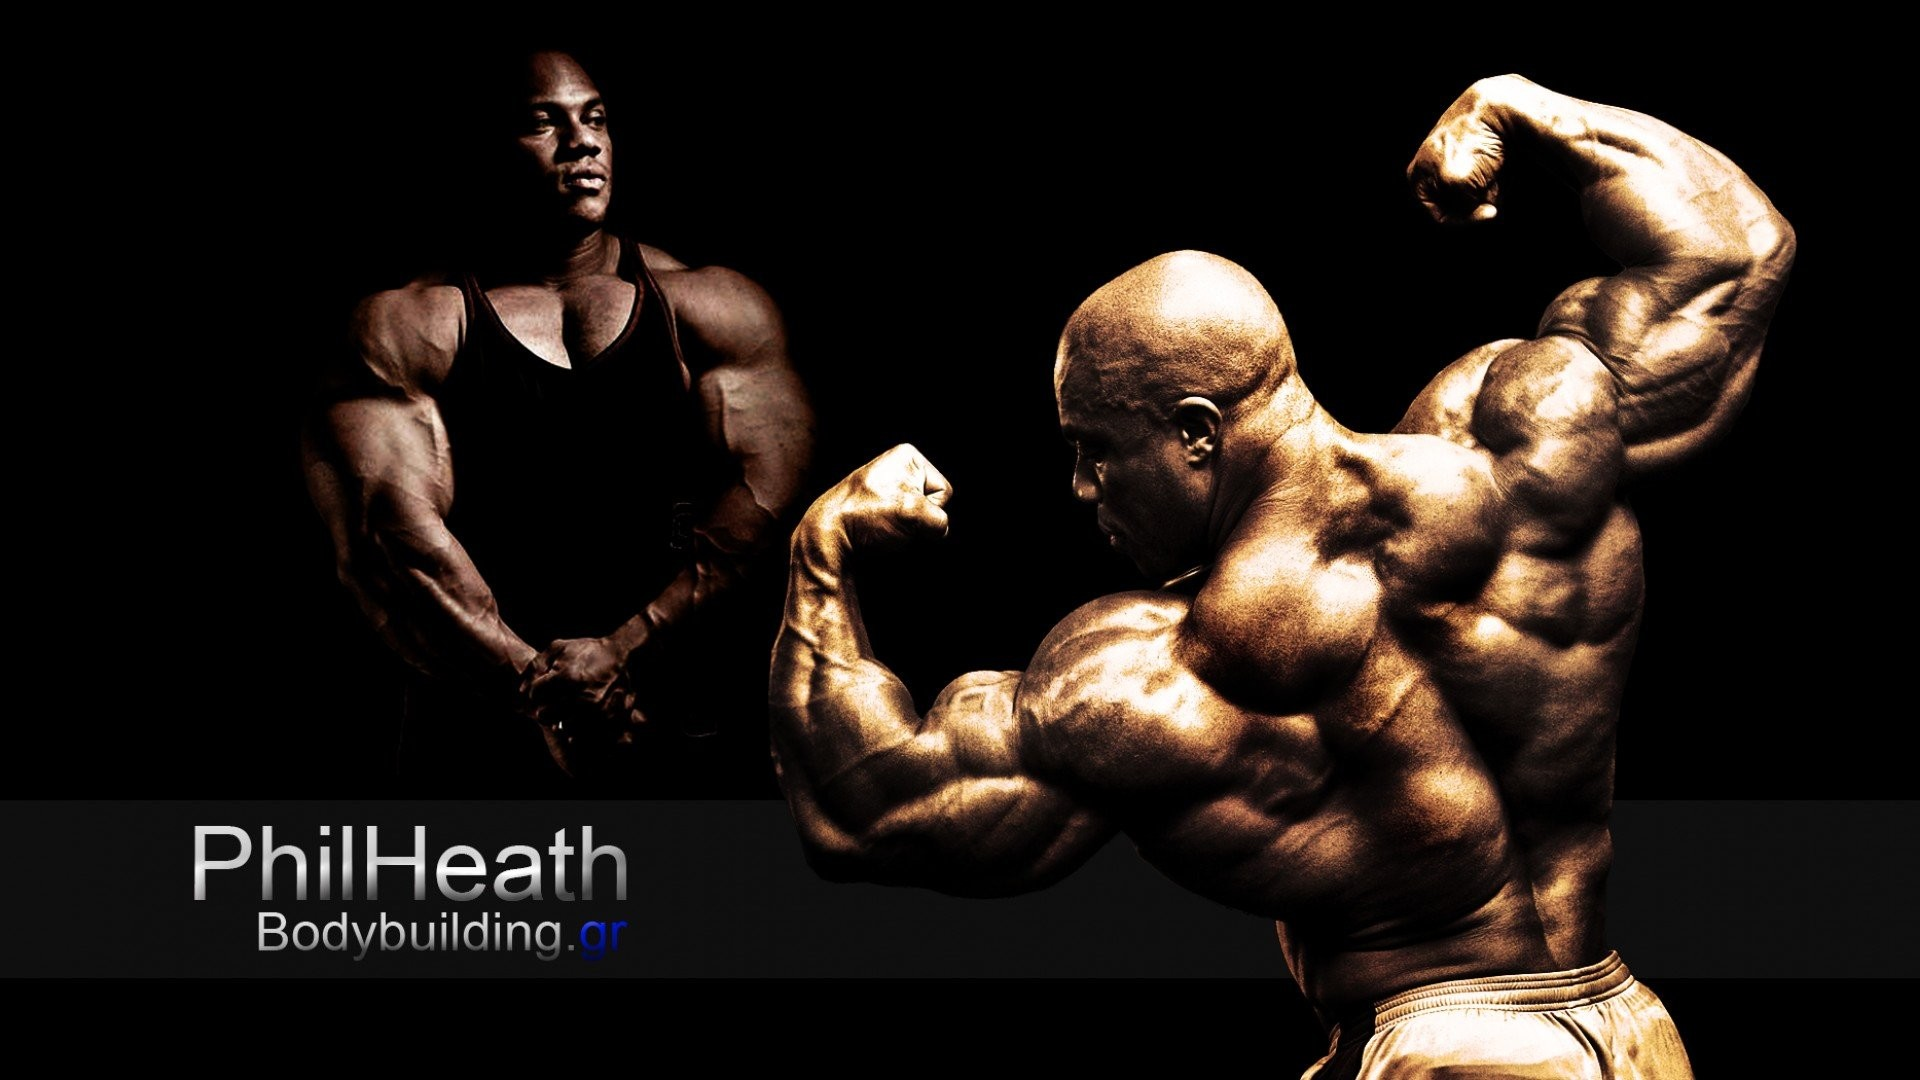 1920x1080 Body-building fitness muscle muscles weight lifting Bodybuilding (70)  wallpaper |  | 415591 | WallpaperUP